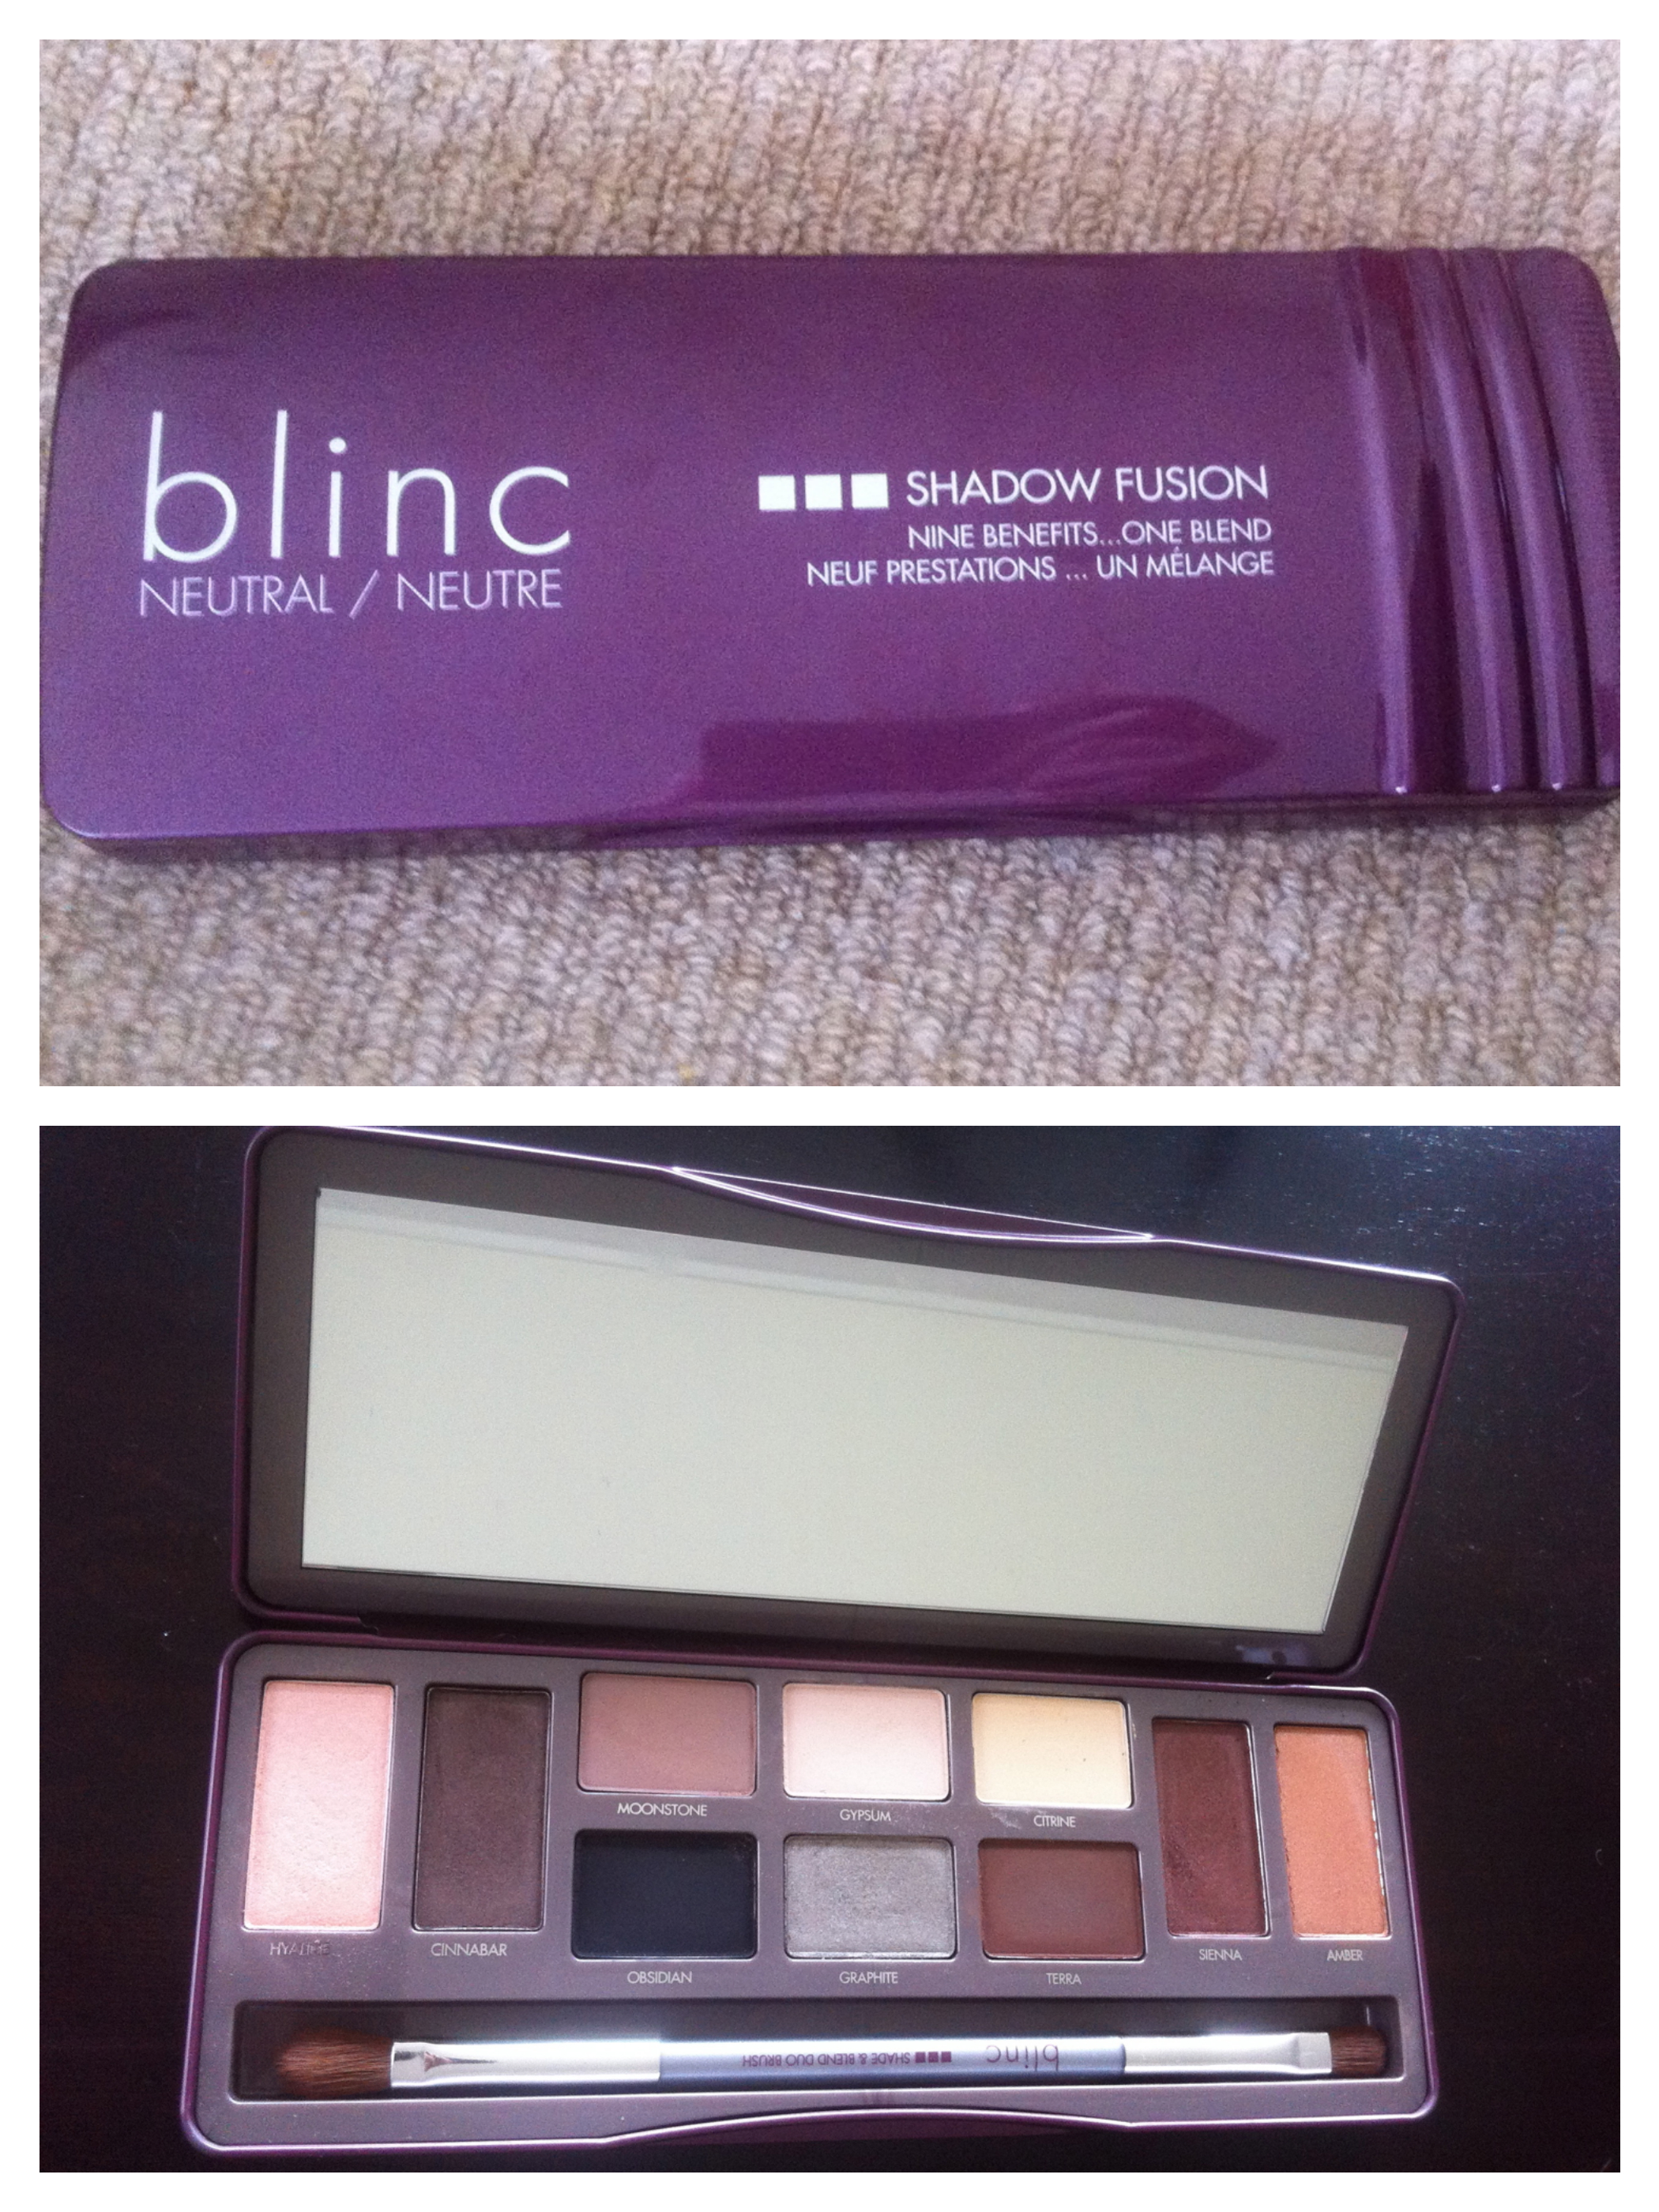 Blinc Shadow Fusion Swatch and Review!